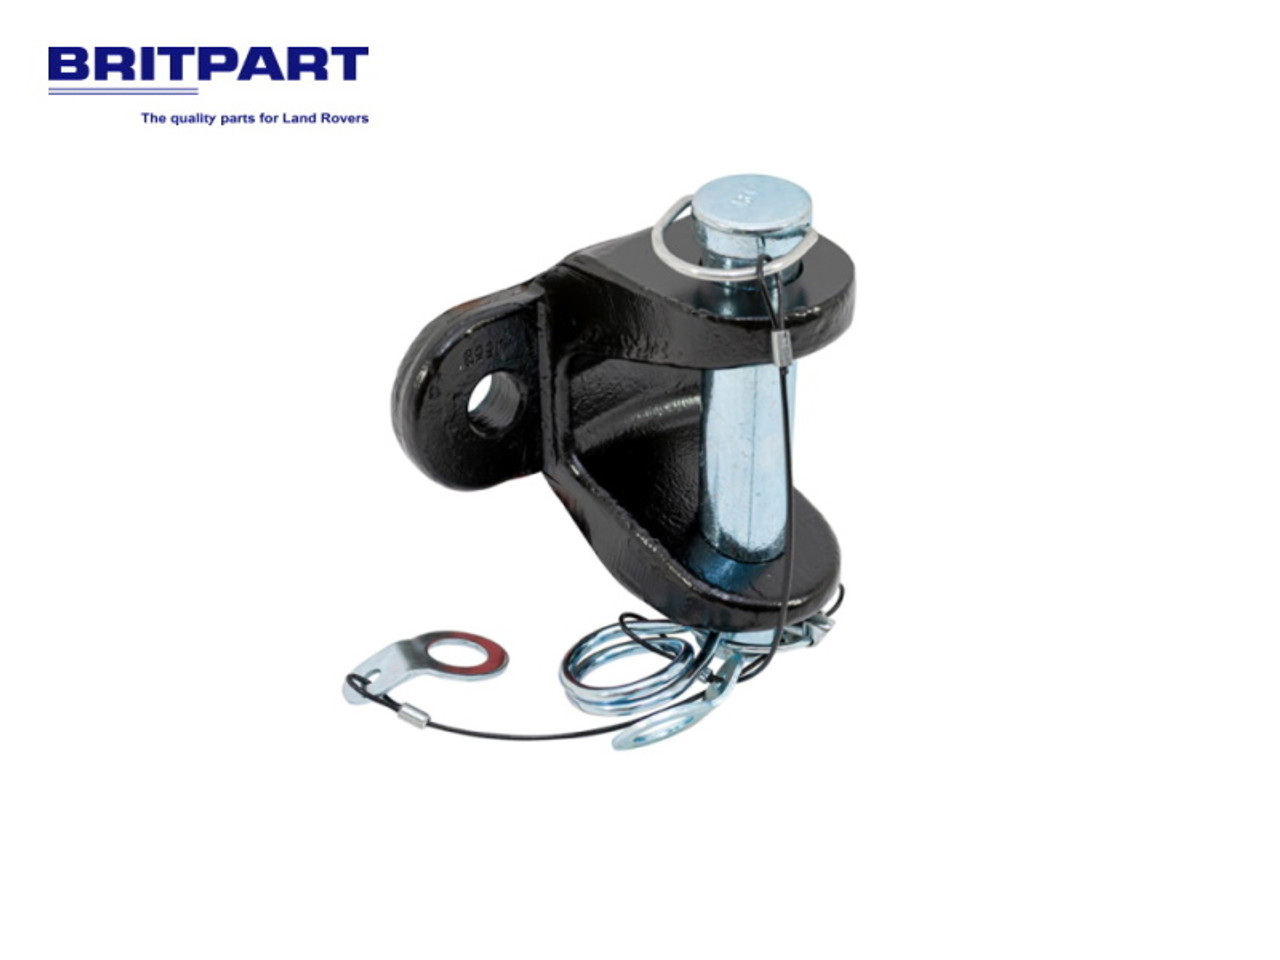 Britpart 3.5 Ton Towing Jaw - KNB100640